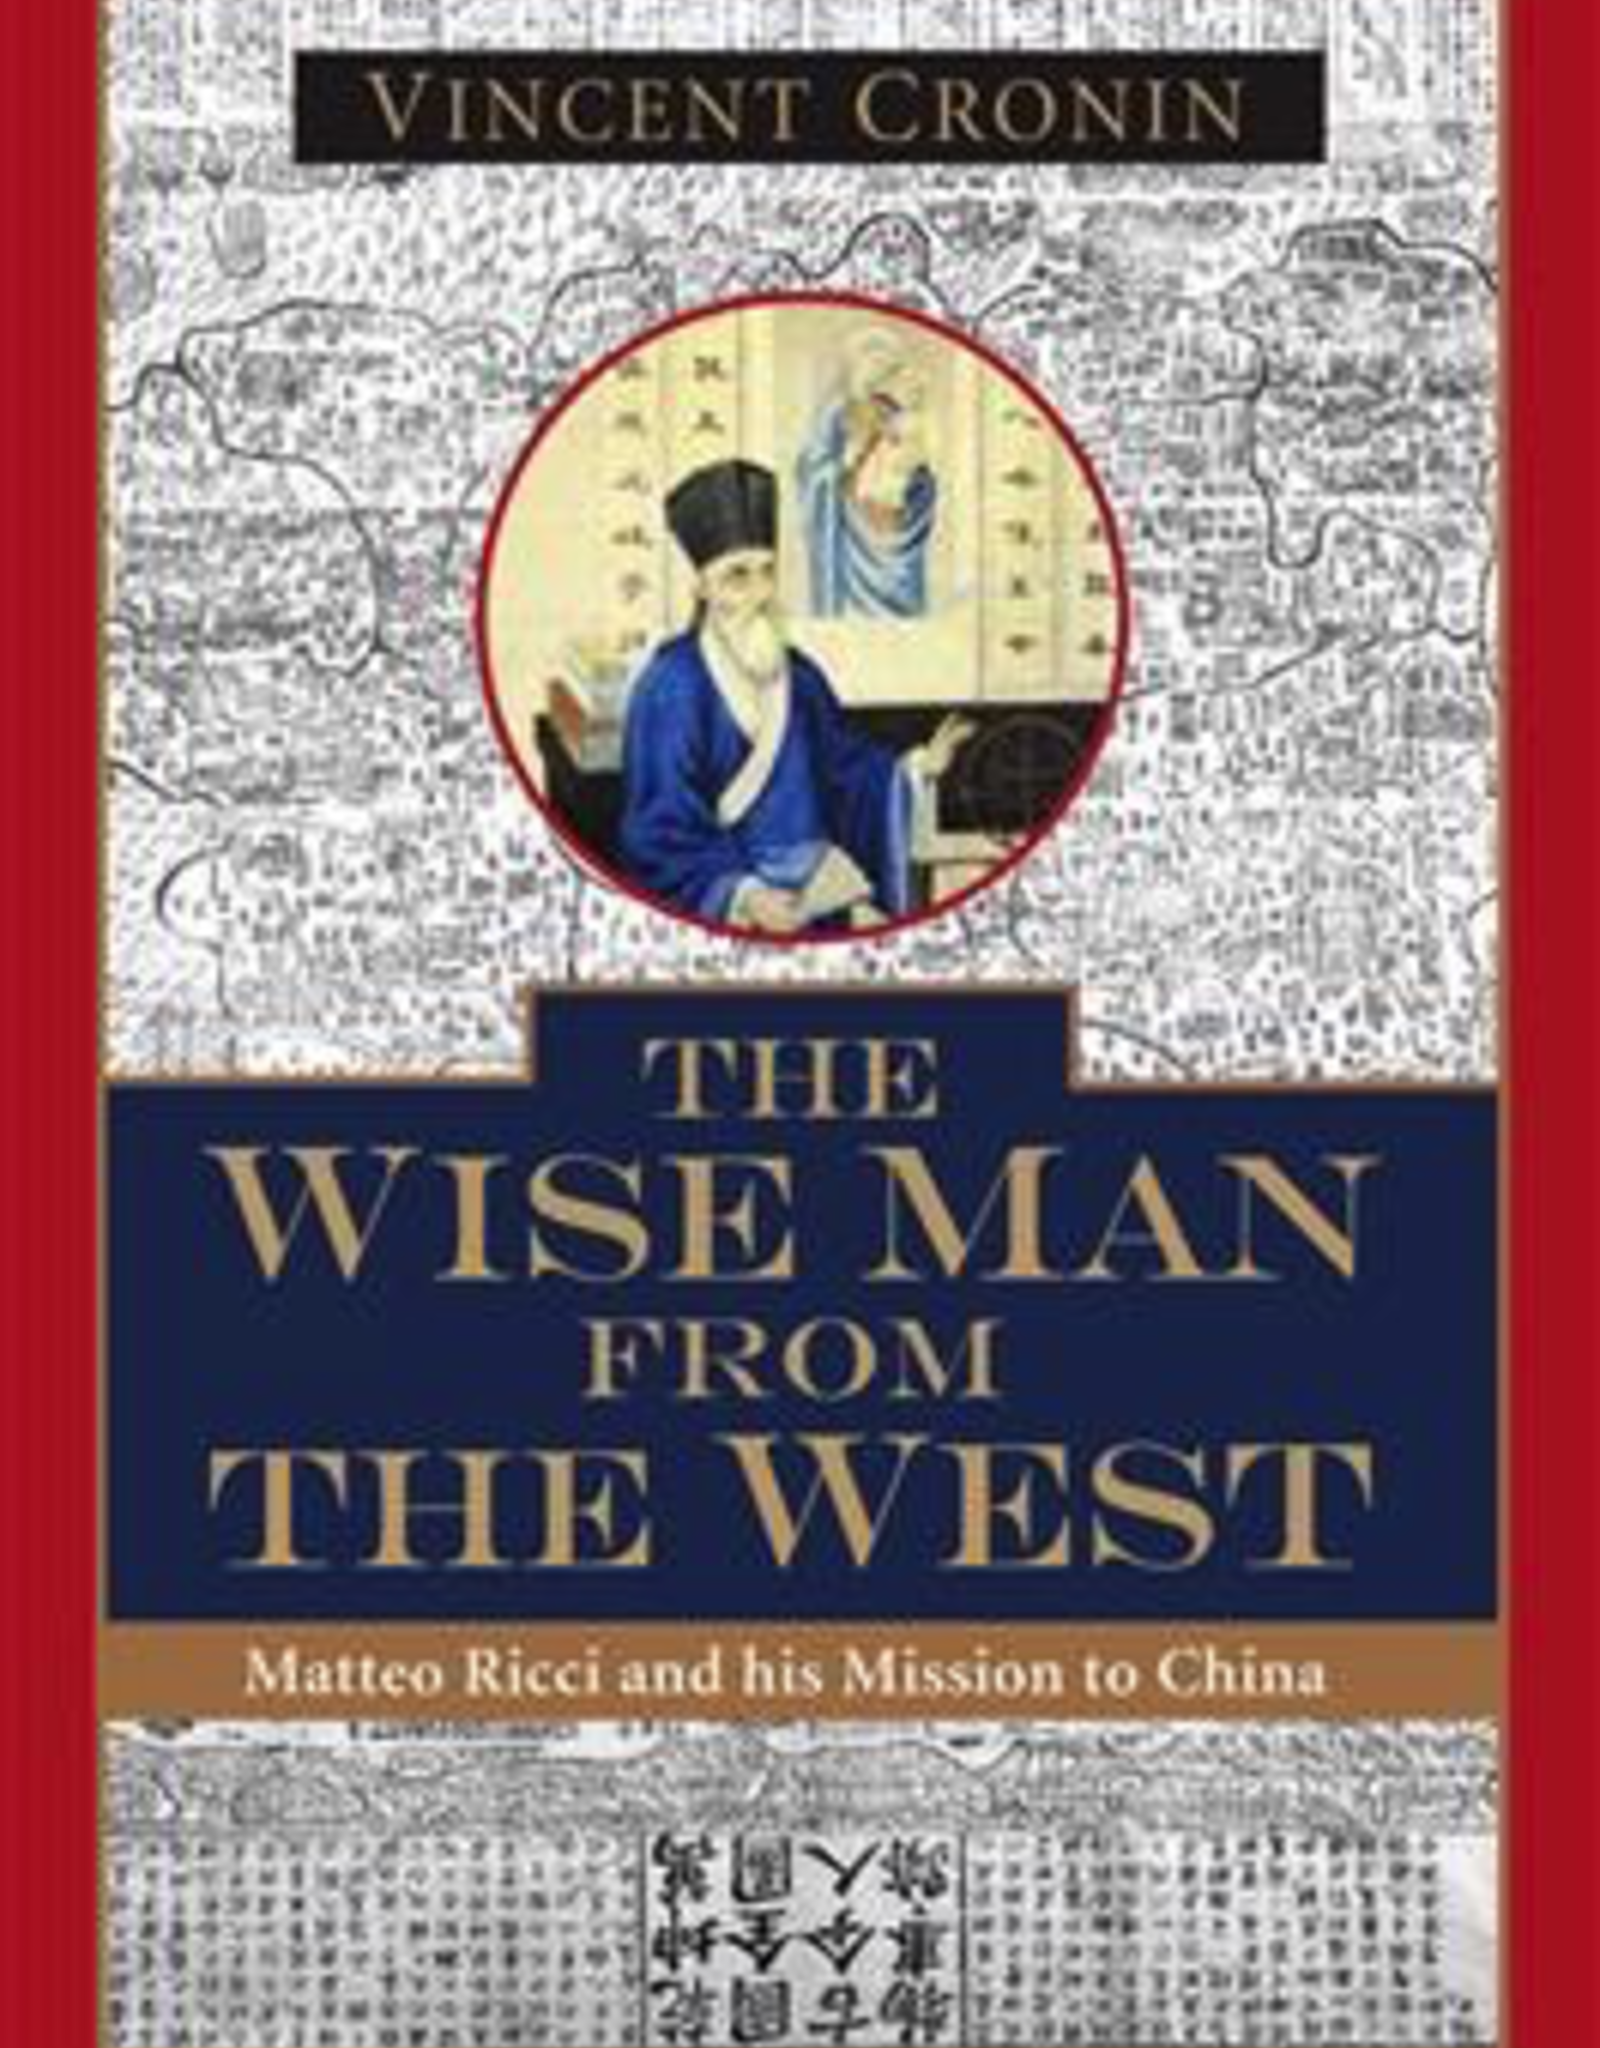 Ignatius Press Wise Man from the West:  Matteo Ricci and His Mission to China, by Vincent Cronin (paperback)